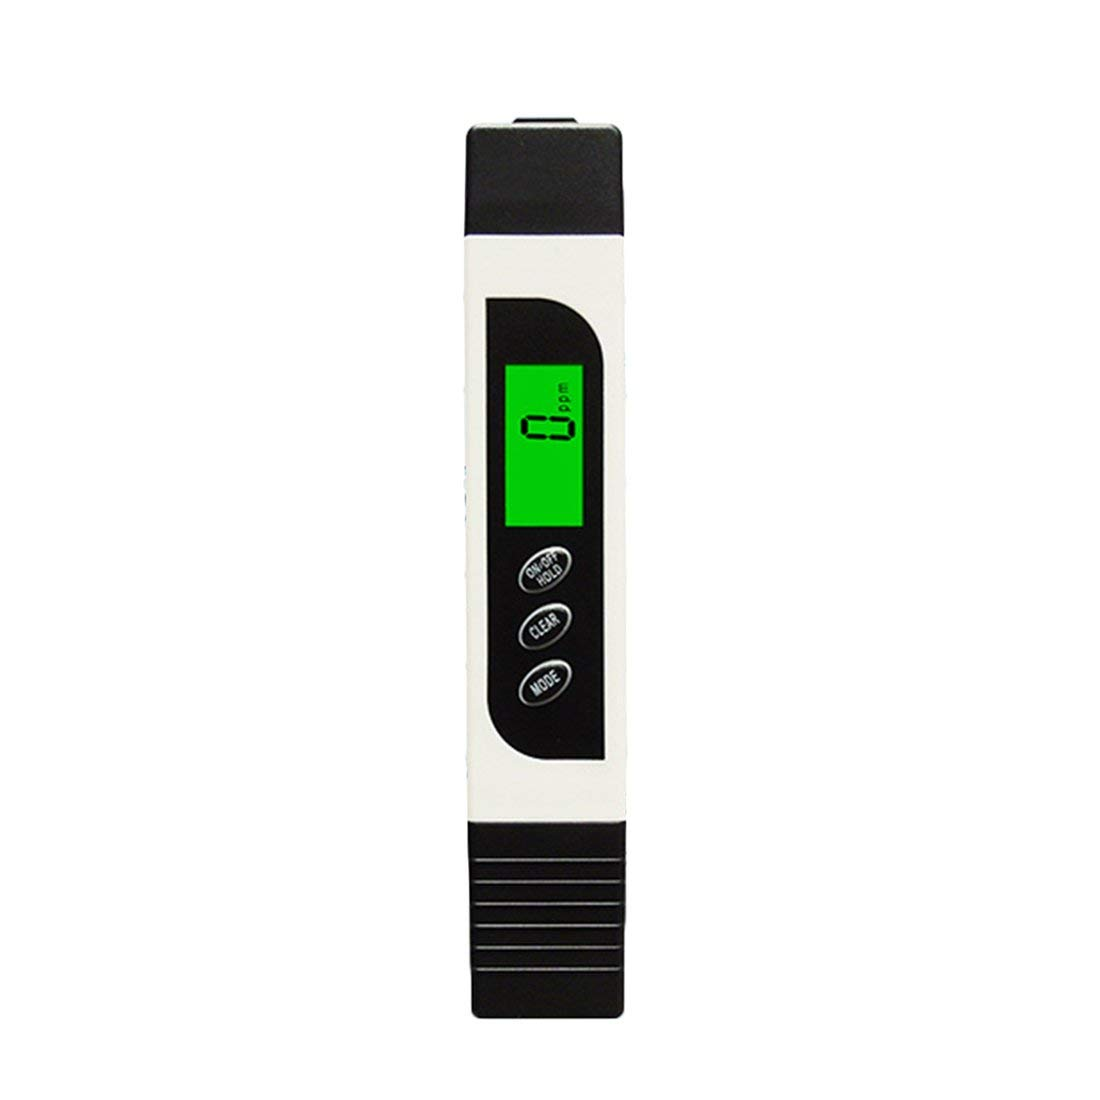 Multifunction PH TDS Meter Tester Portable Digital Pen 0.01 High Accurate Filter Measuring Water Quality Purity Test Tool - White Formulaone